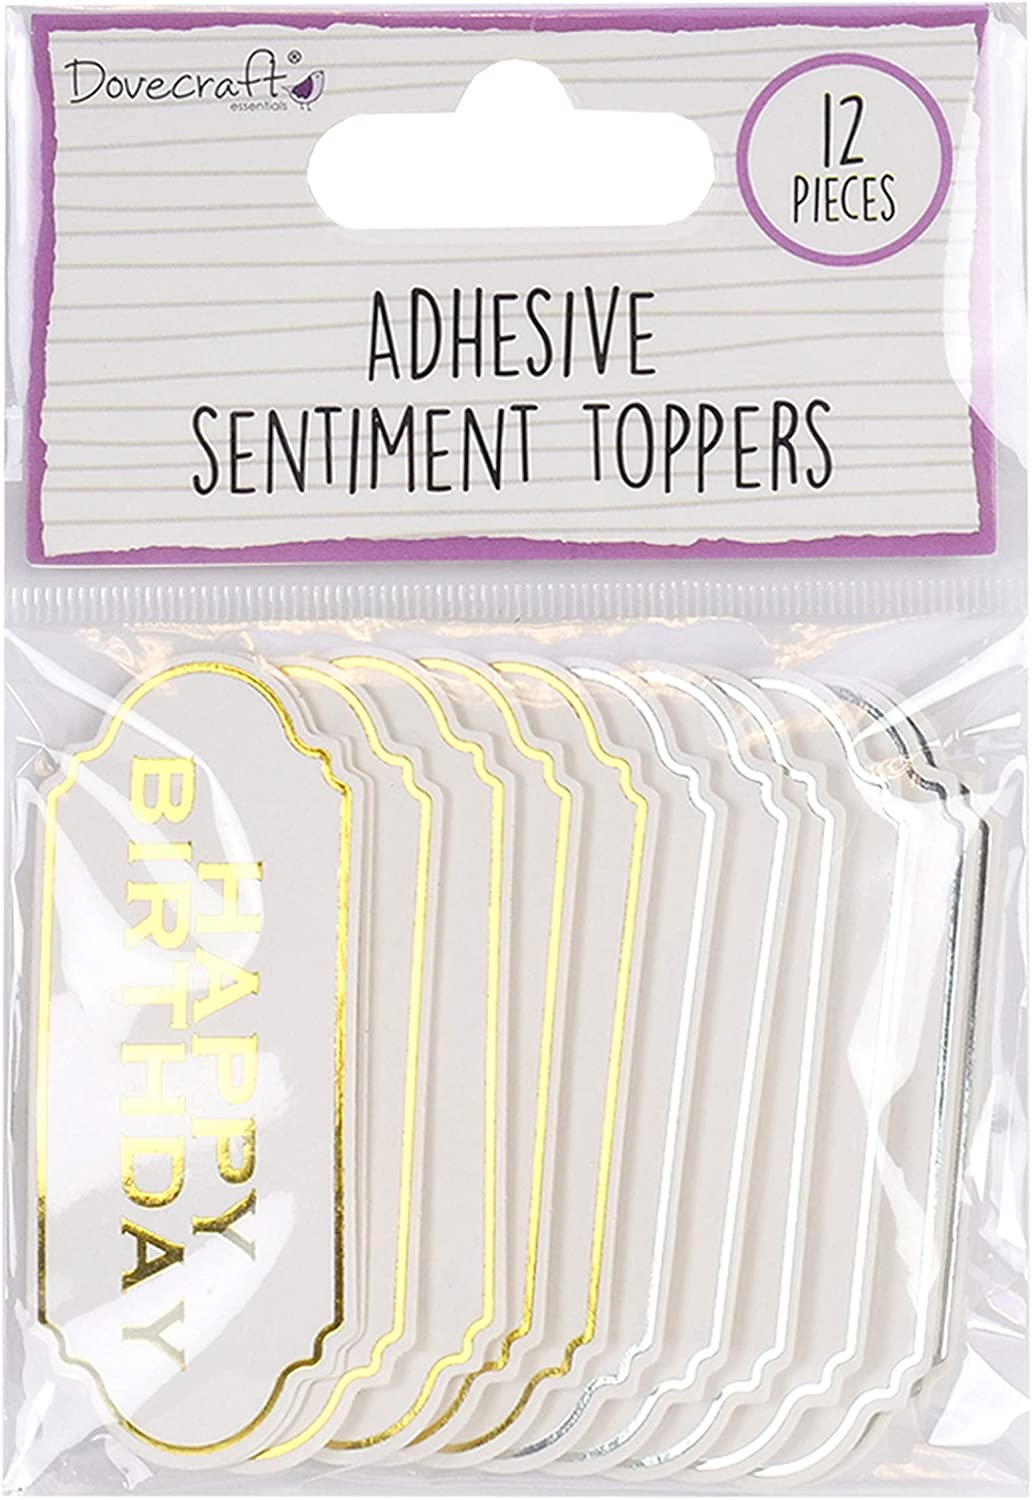 multifarben Dovecraft DCBS181 Die Cut Toppers One Size